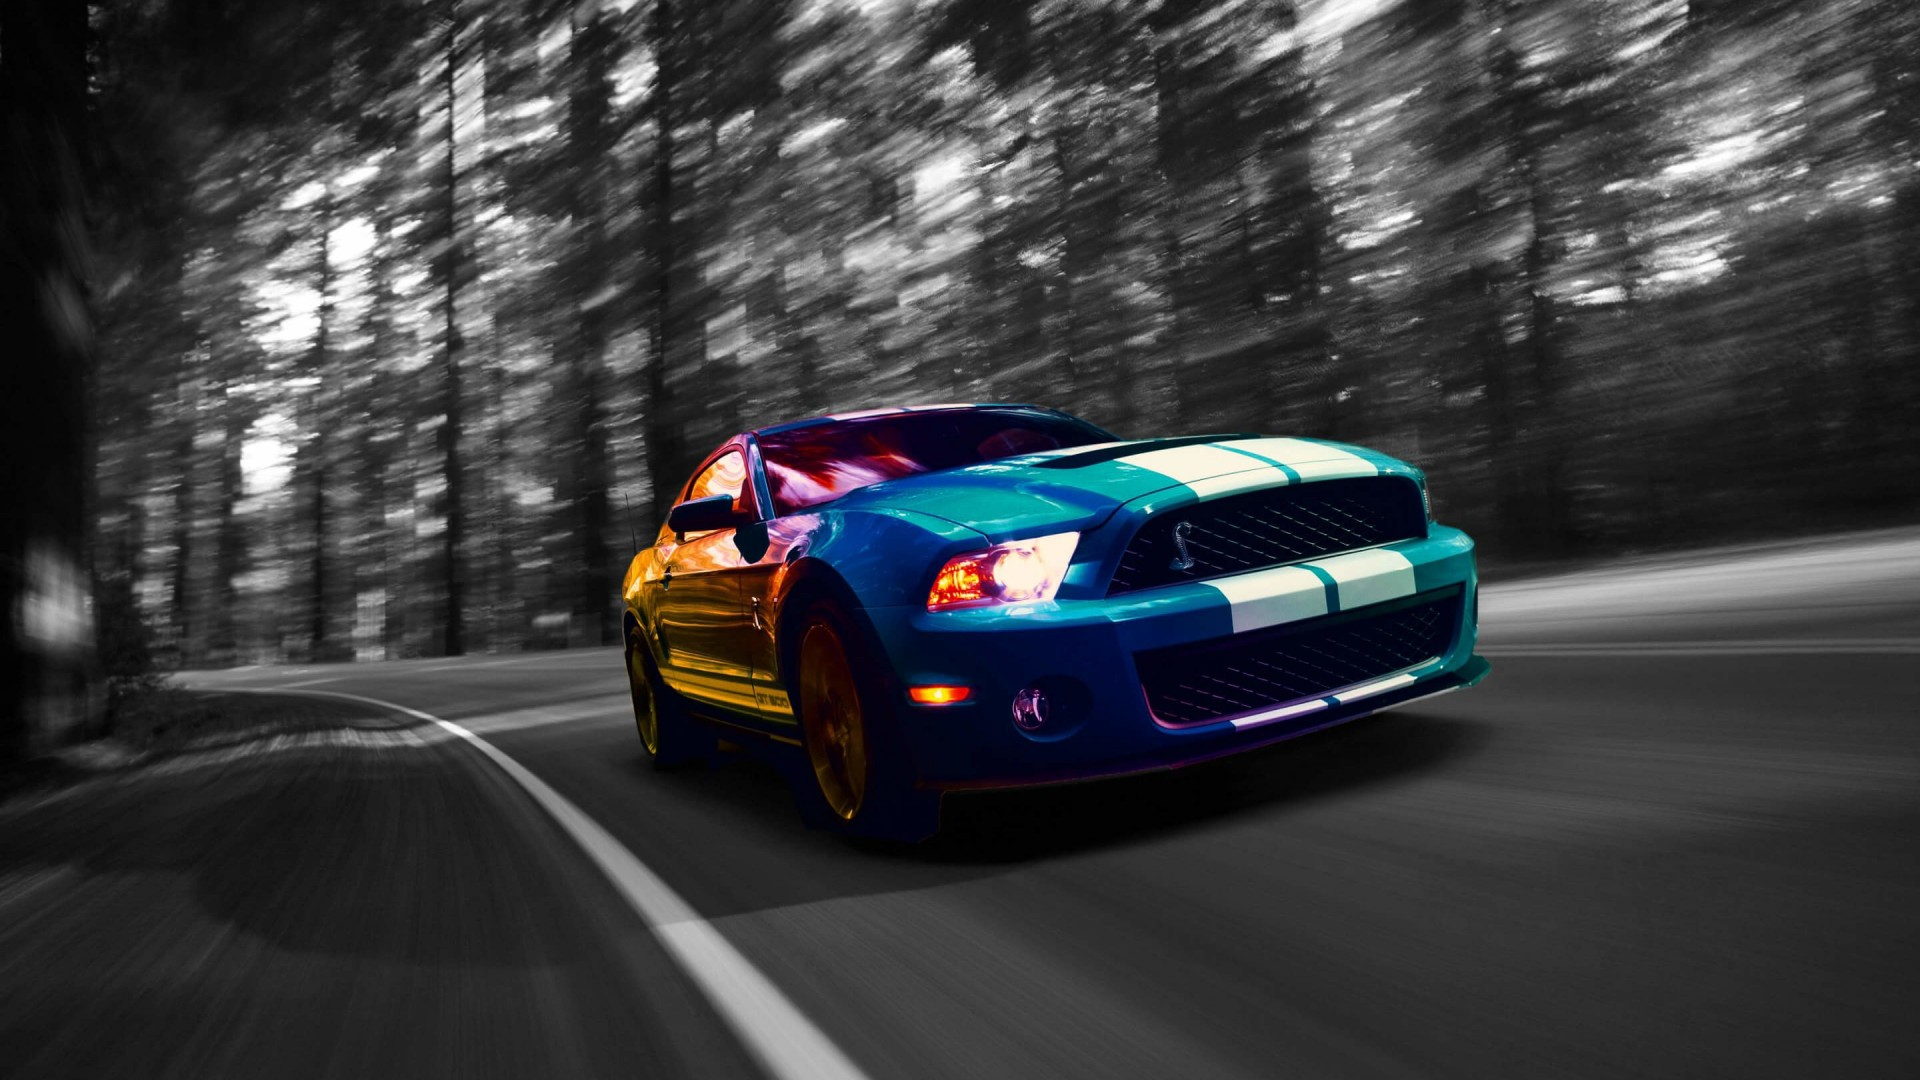 Ford Mustang Shelby GT500 Wallpaper for Desktop 1920x1080